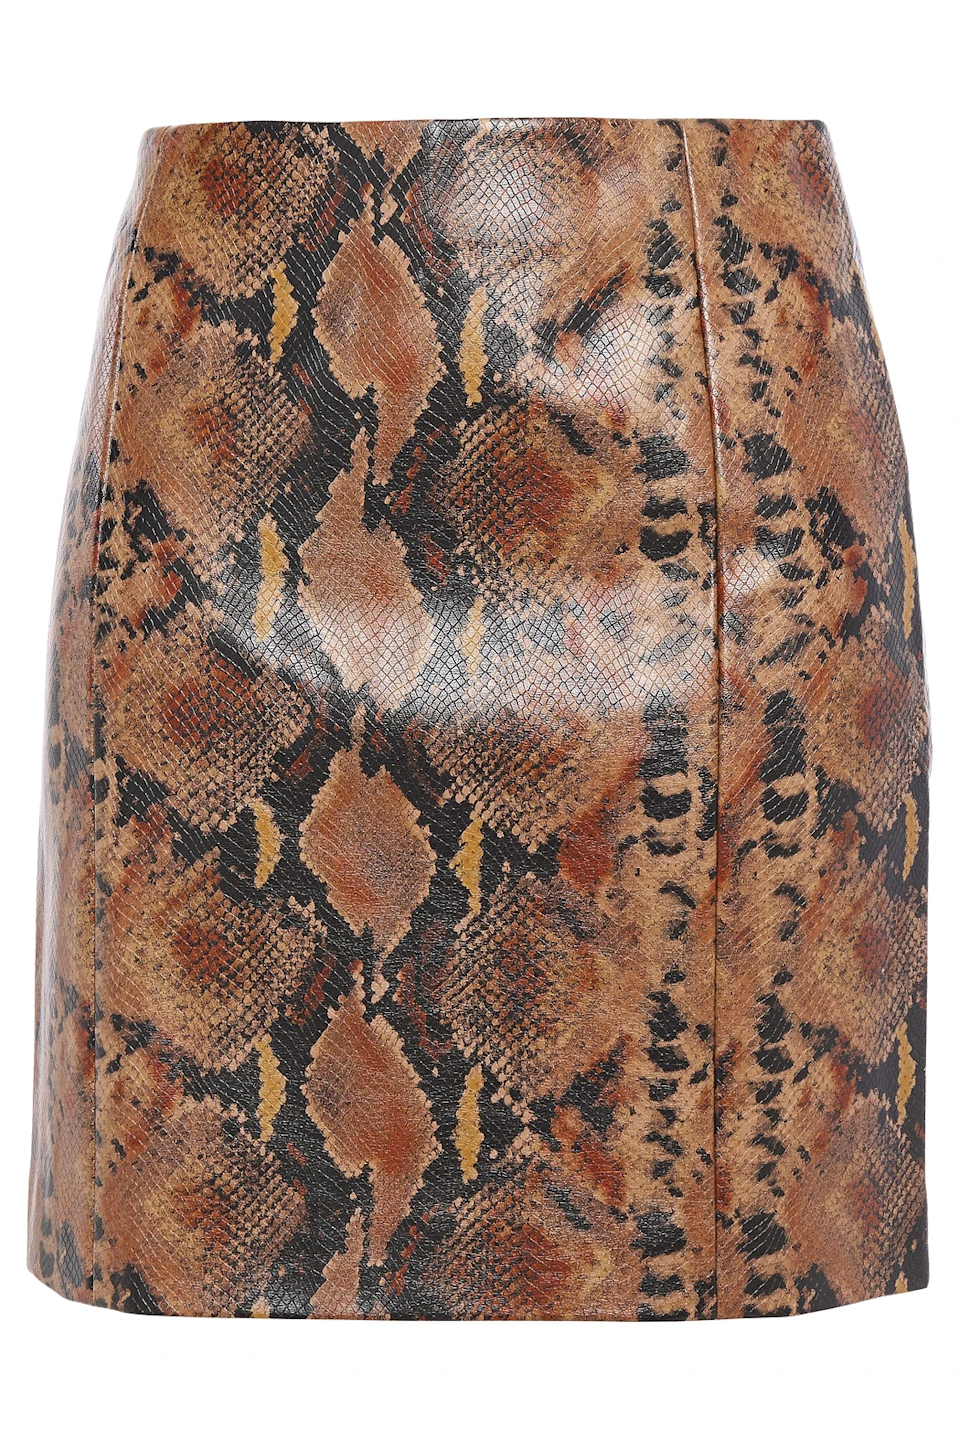 "<br><br><strong>Ronny Kobo</strong> Faux snake-effect leather mini skirt, $, available at <a href=""https://go.skimresources.com/?id=30283X879131&url=https%3A%2F%2Fwww.theoutnet.com%2Fen-au%2Fshop%2Fproduct%2Fronny-kobo%2Fskirts%2Fmini-skirts%2Ffaux-snake-effect-leather-mini-skirt%2F16301891330429761"" rel=""nofollow noopener"" target=""_blank"" data-ylk=""slk:The Outnet"" class=""link rapid-noclick-resp"">The Outnet</a>"